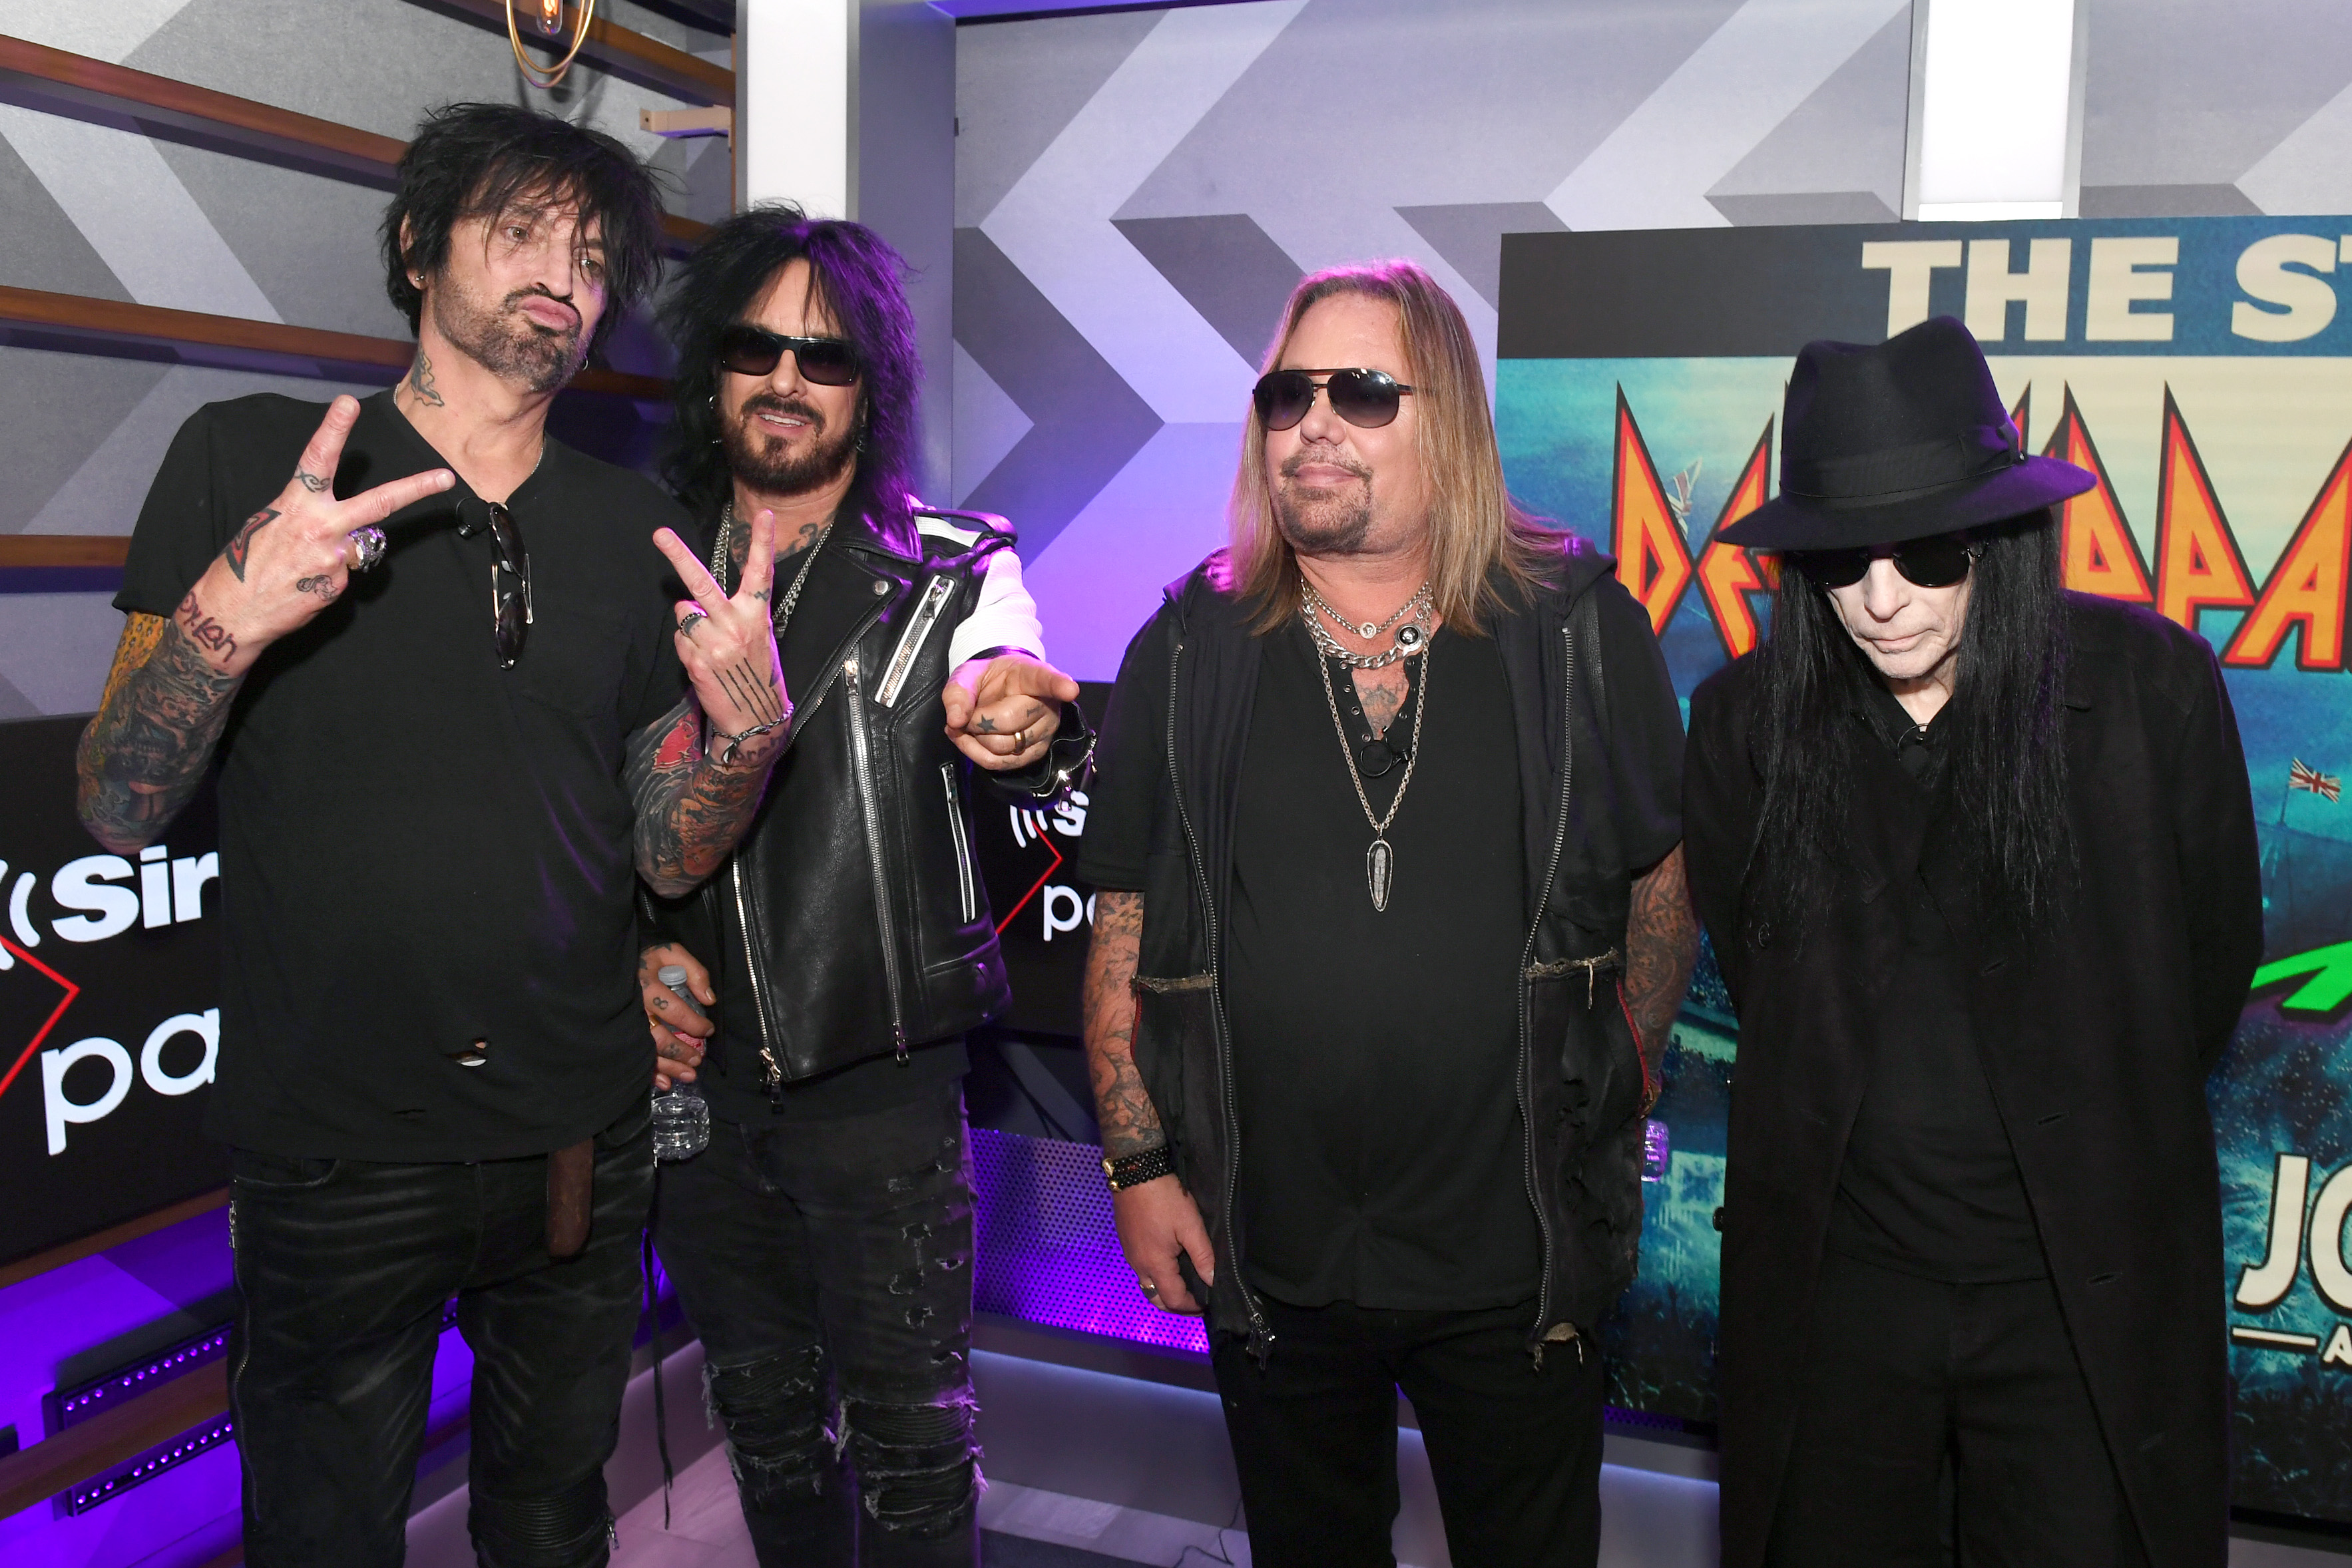 """Sixx and Tommy Lee formed Motley Crue in 1981. Shortly thereafter, the two came across Mick Mars' infamous """"Loud, rude and aggressive guitar player available"""" ad. The weird kismet moment, of course, was that Sixx and Mars met before in a liquor store where Sixx worked as a cashier. It's all in The Dirt. If you haven't read it yet, shame on you!"""